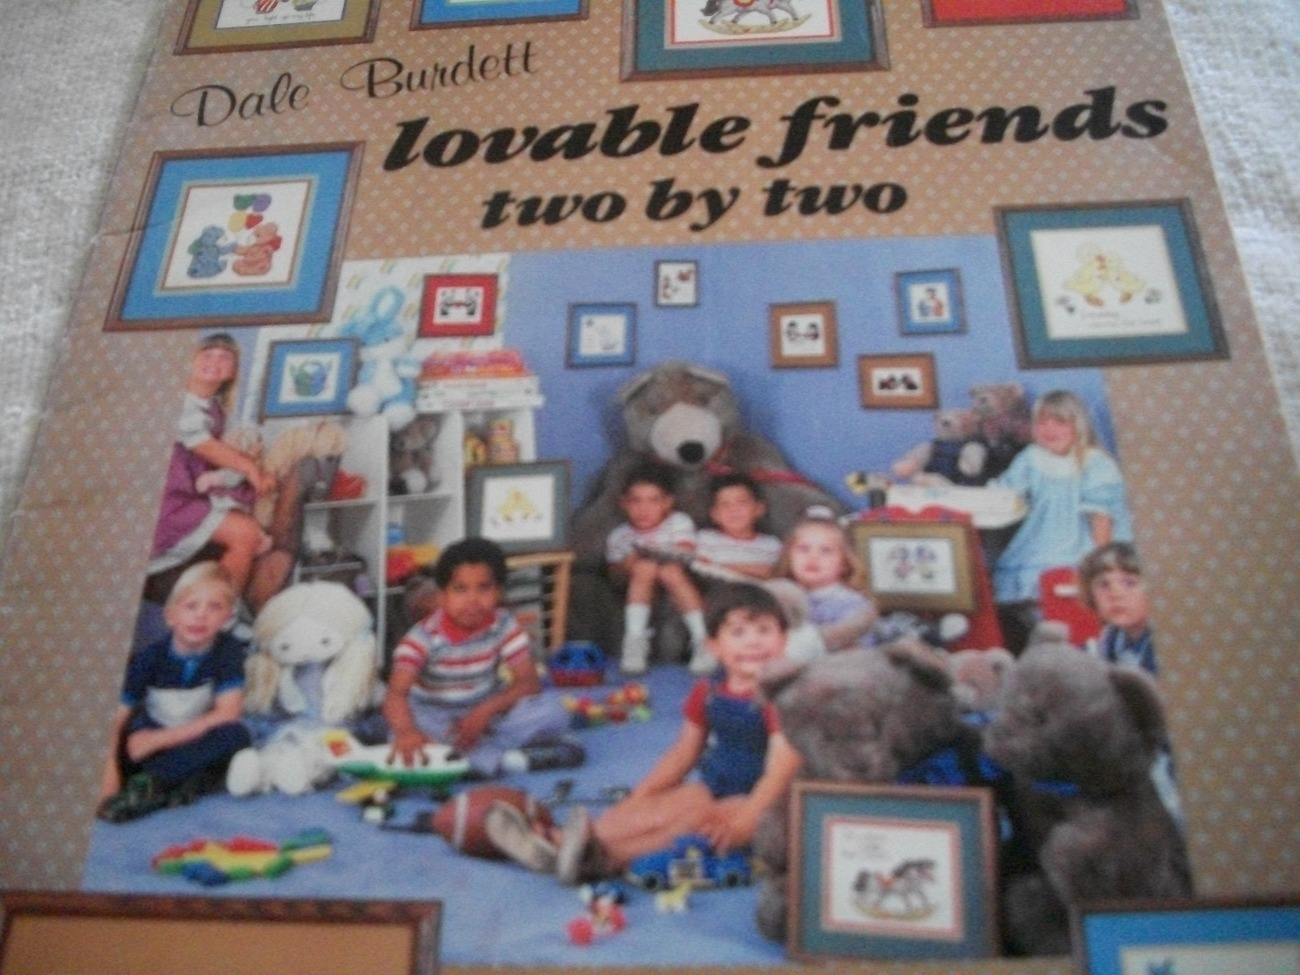 Lovable Friends Two by Two Cross Stitch Designs